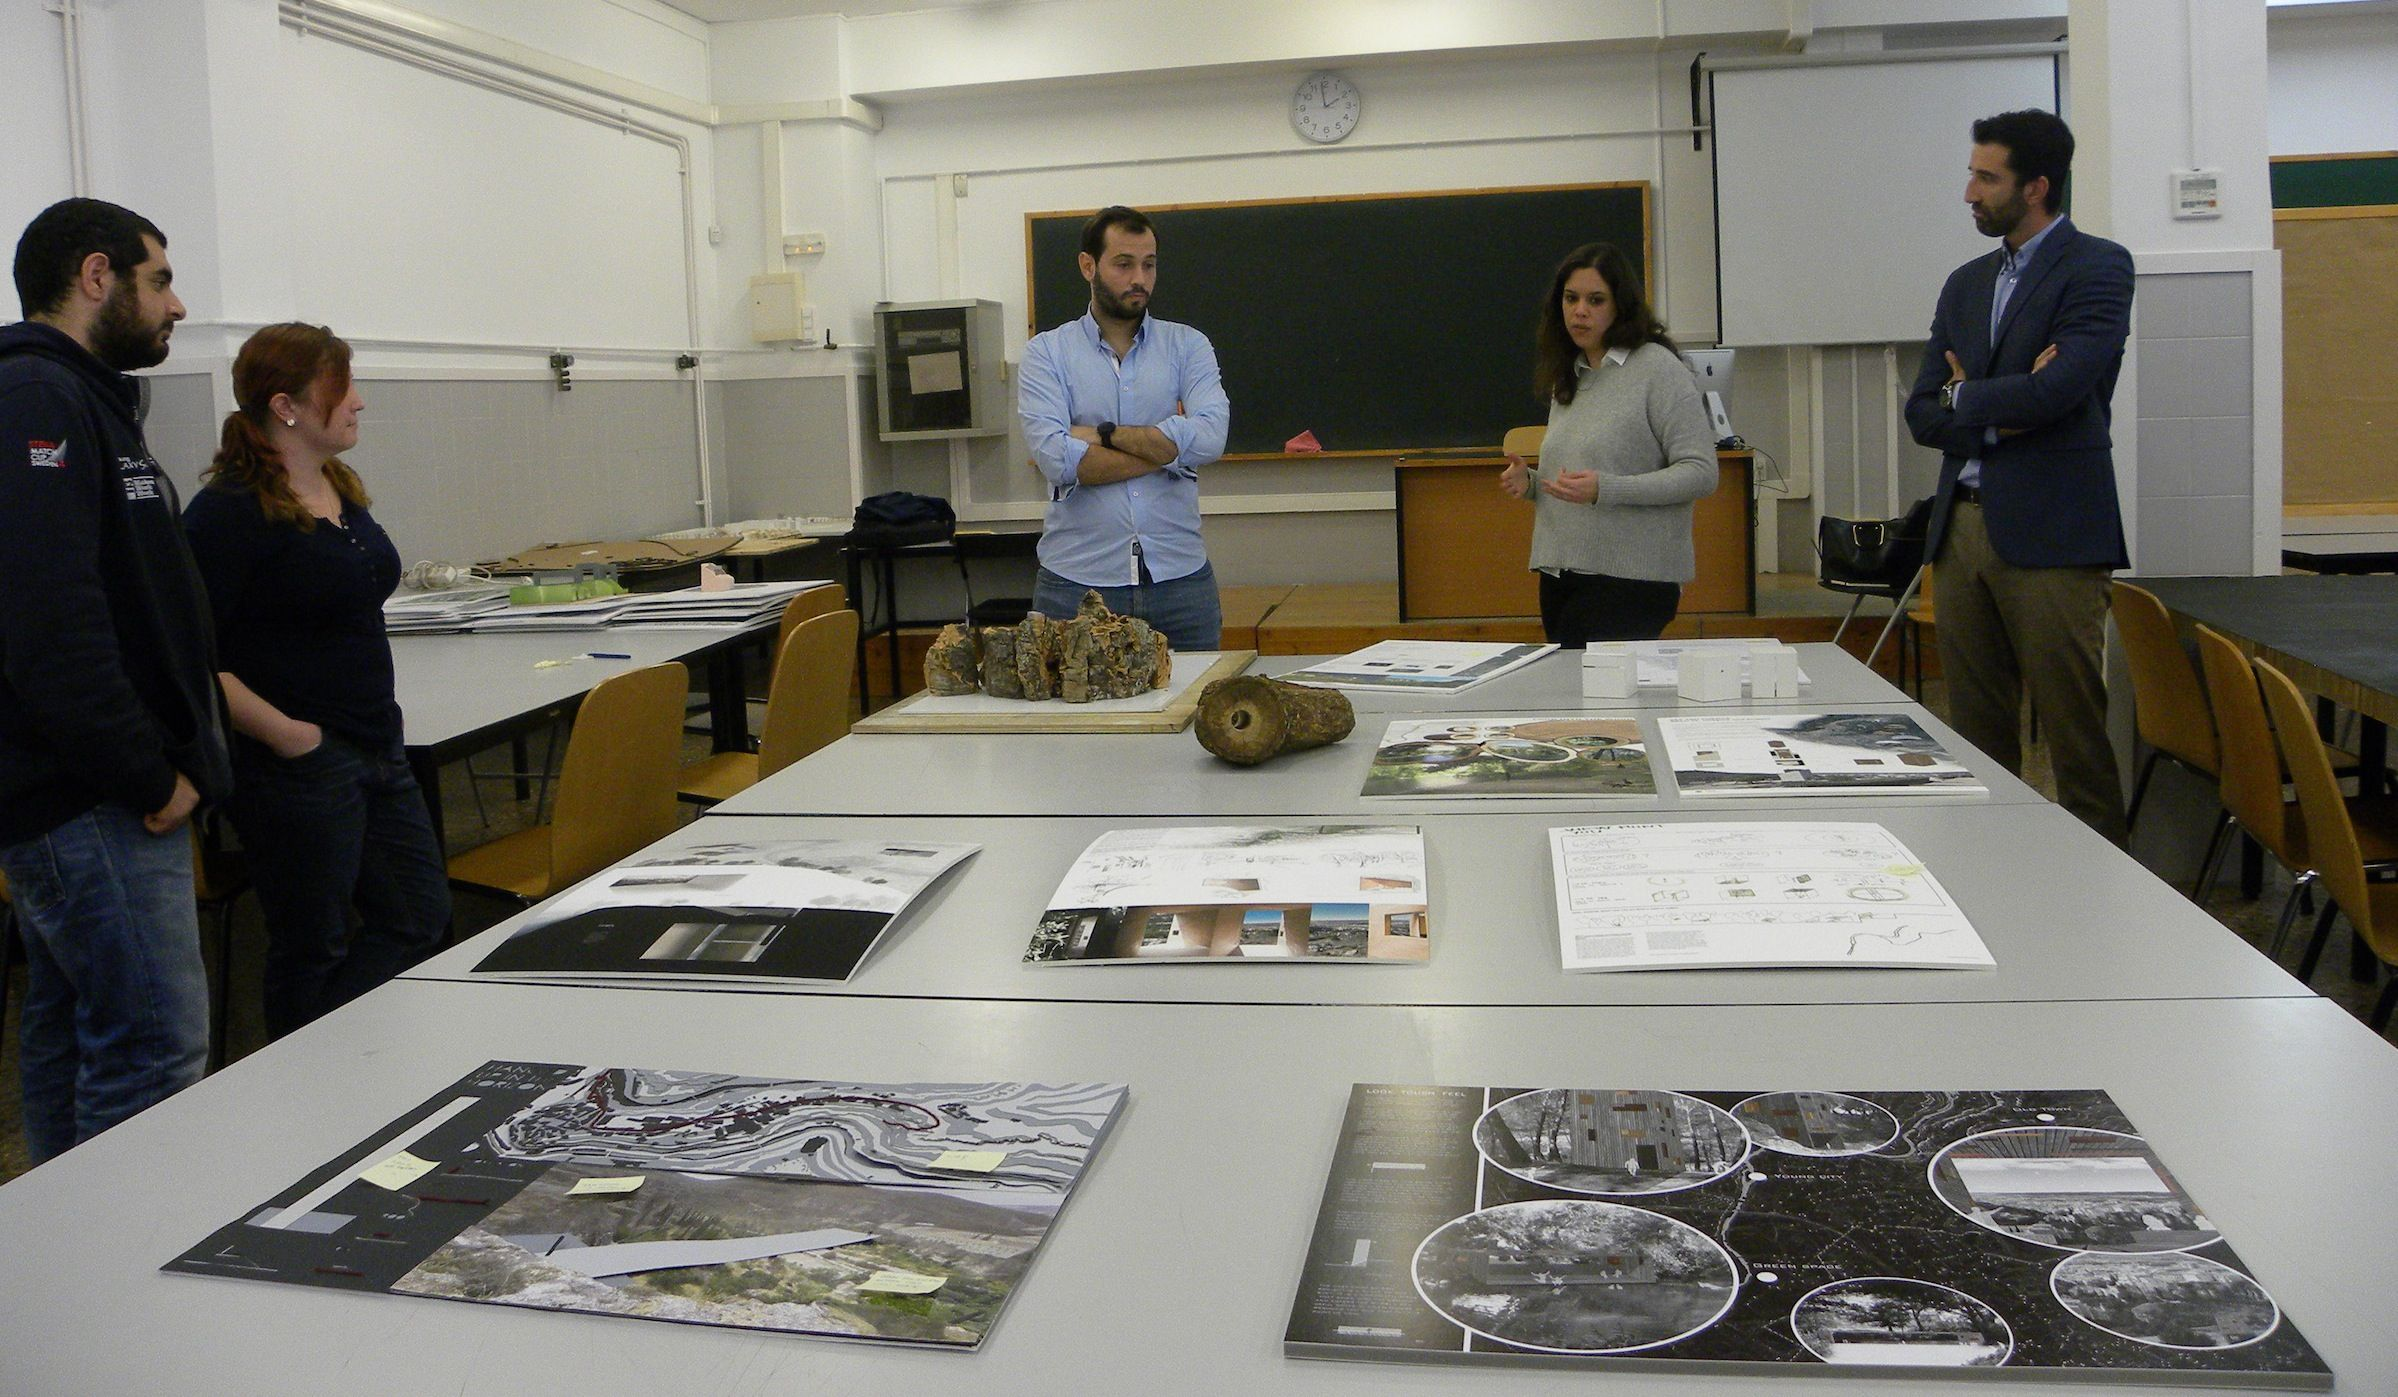 Amelia Perea ha visitado recientemente la CEU-UCH como jurado de las propuestas de los estudiantes en la International Weeek of Architecture.